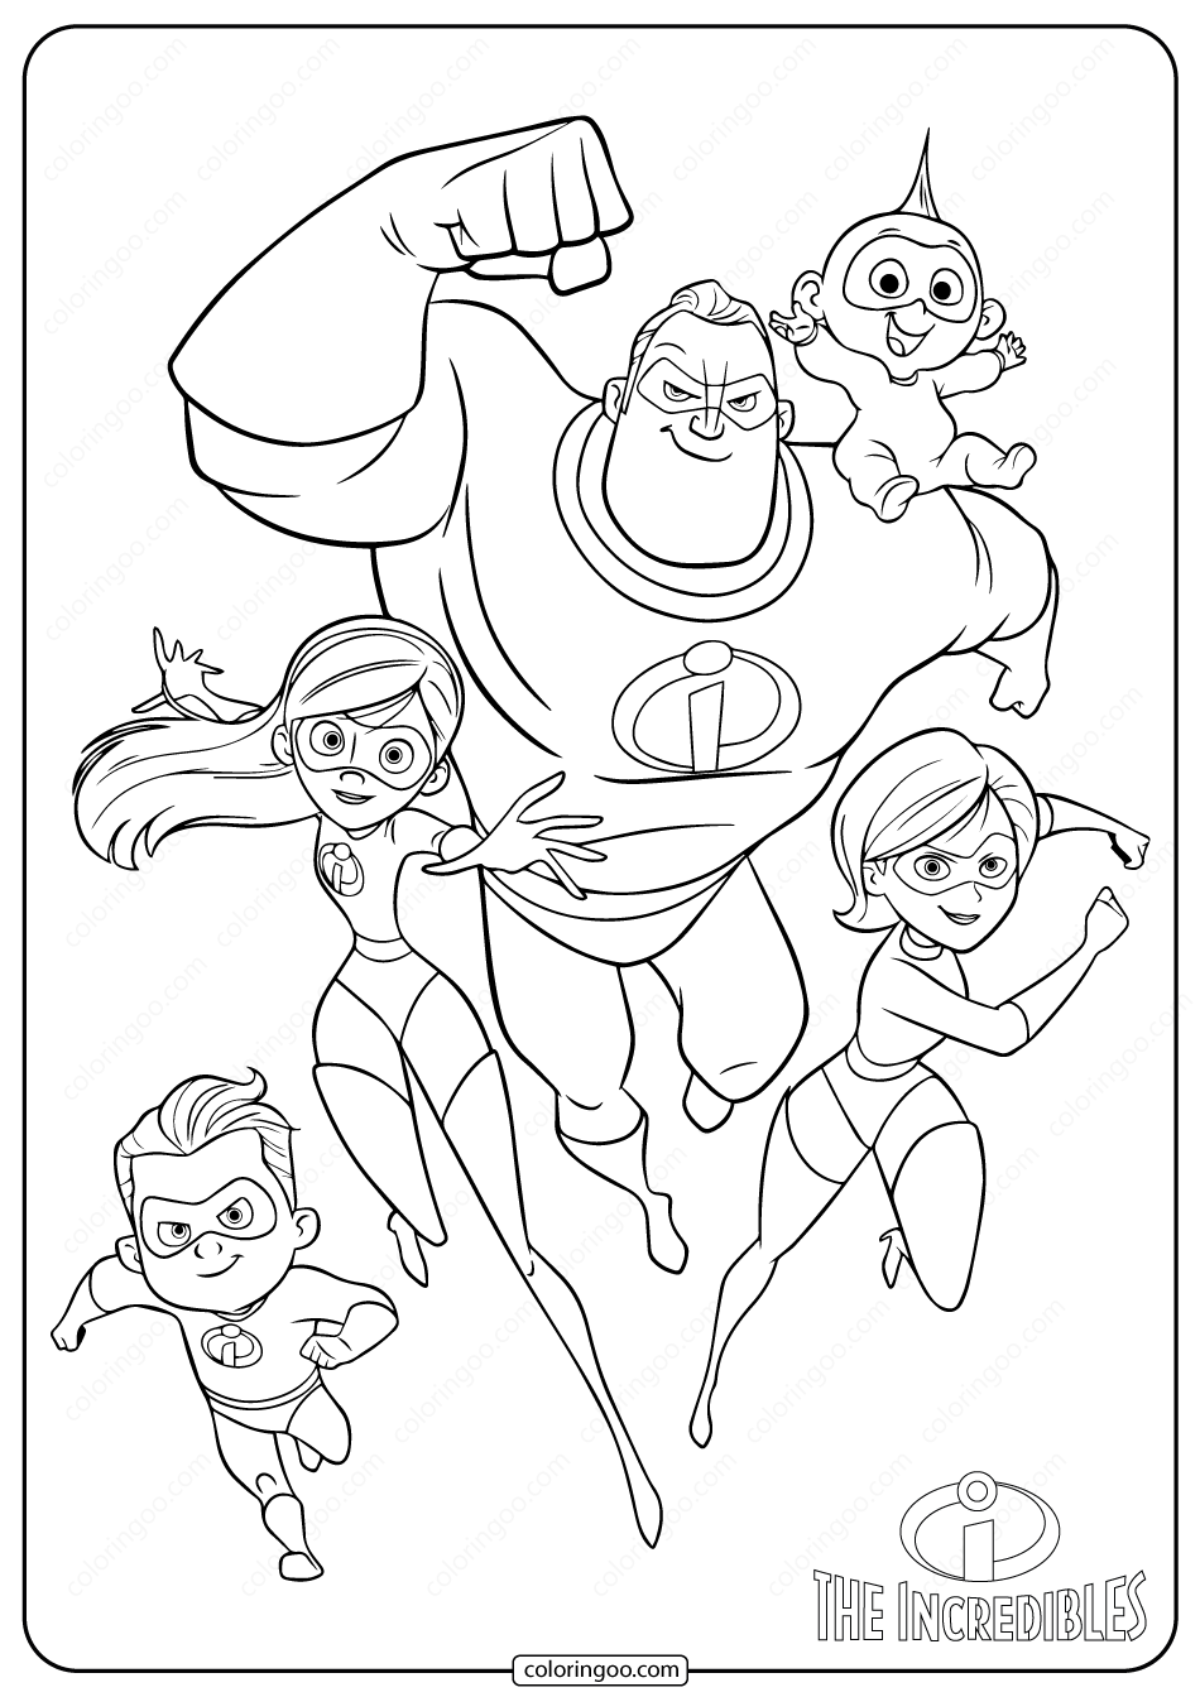 The Incredibles Coloring Pages | Disneyclips.com | 1697x1200